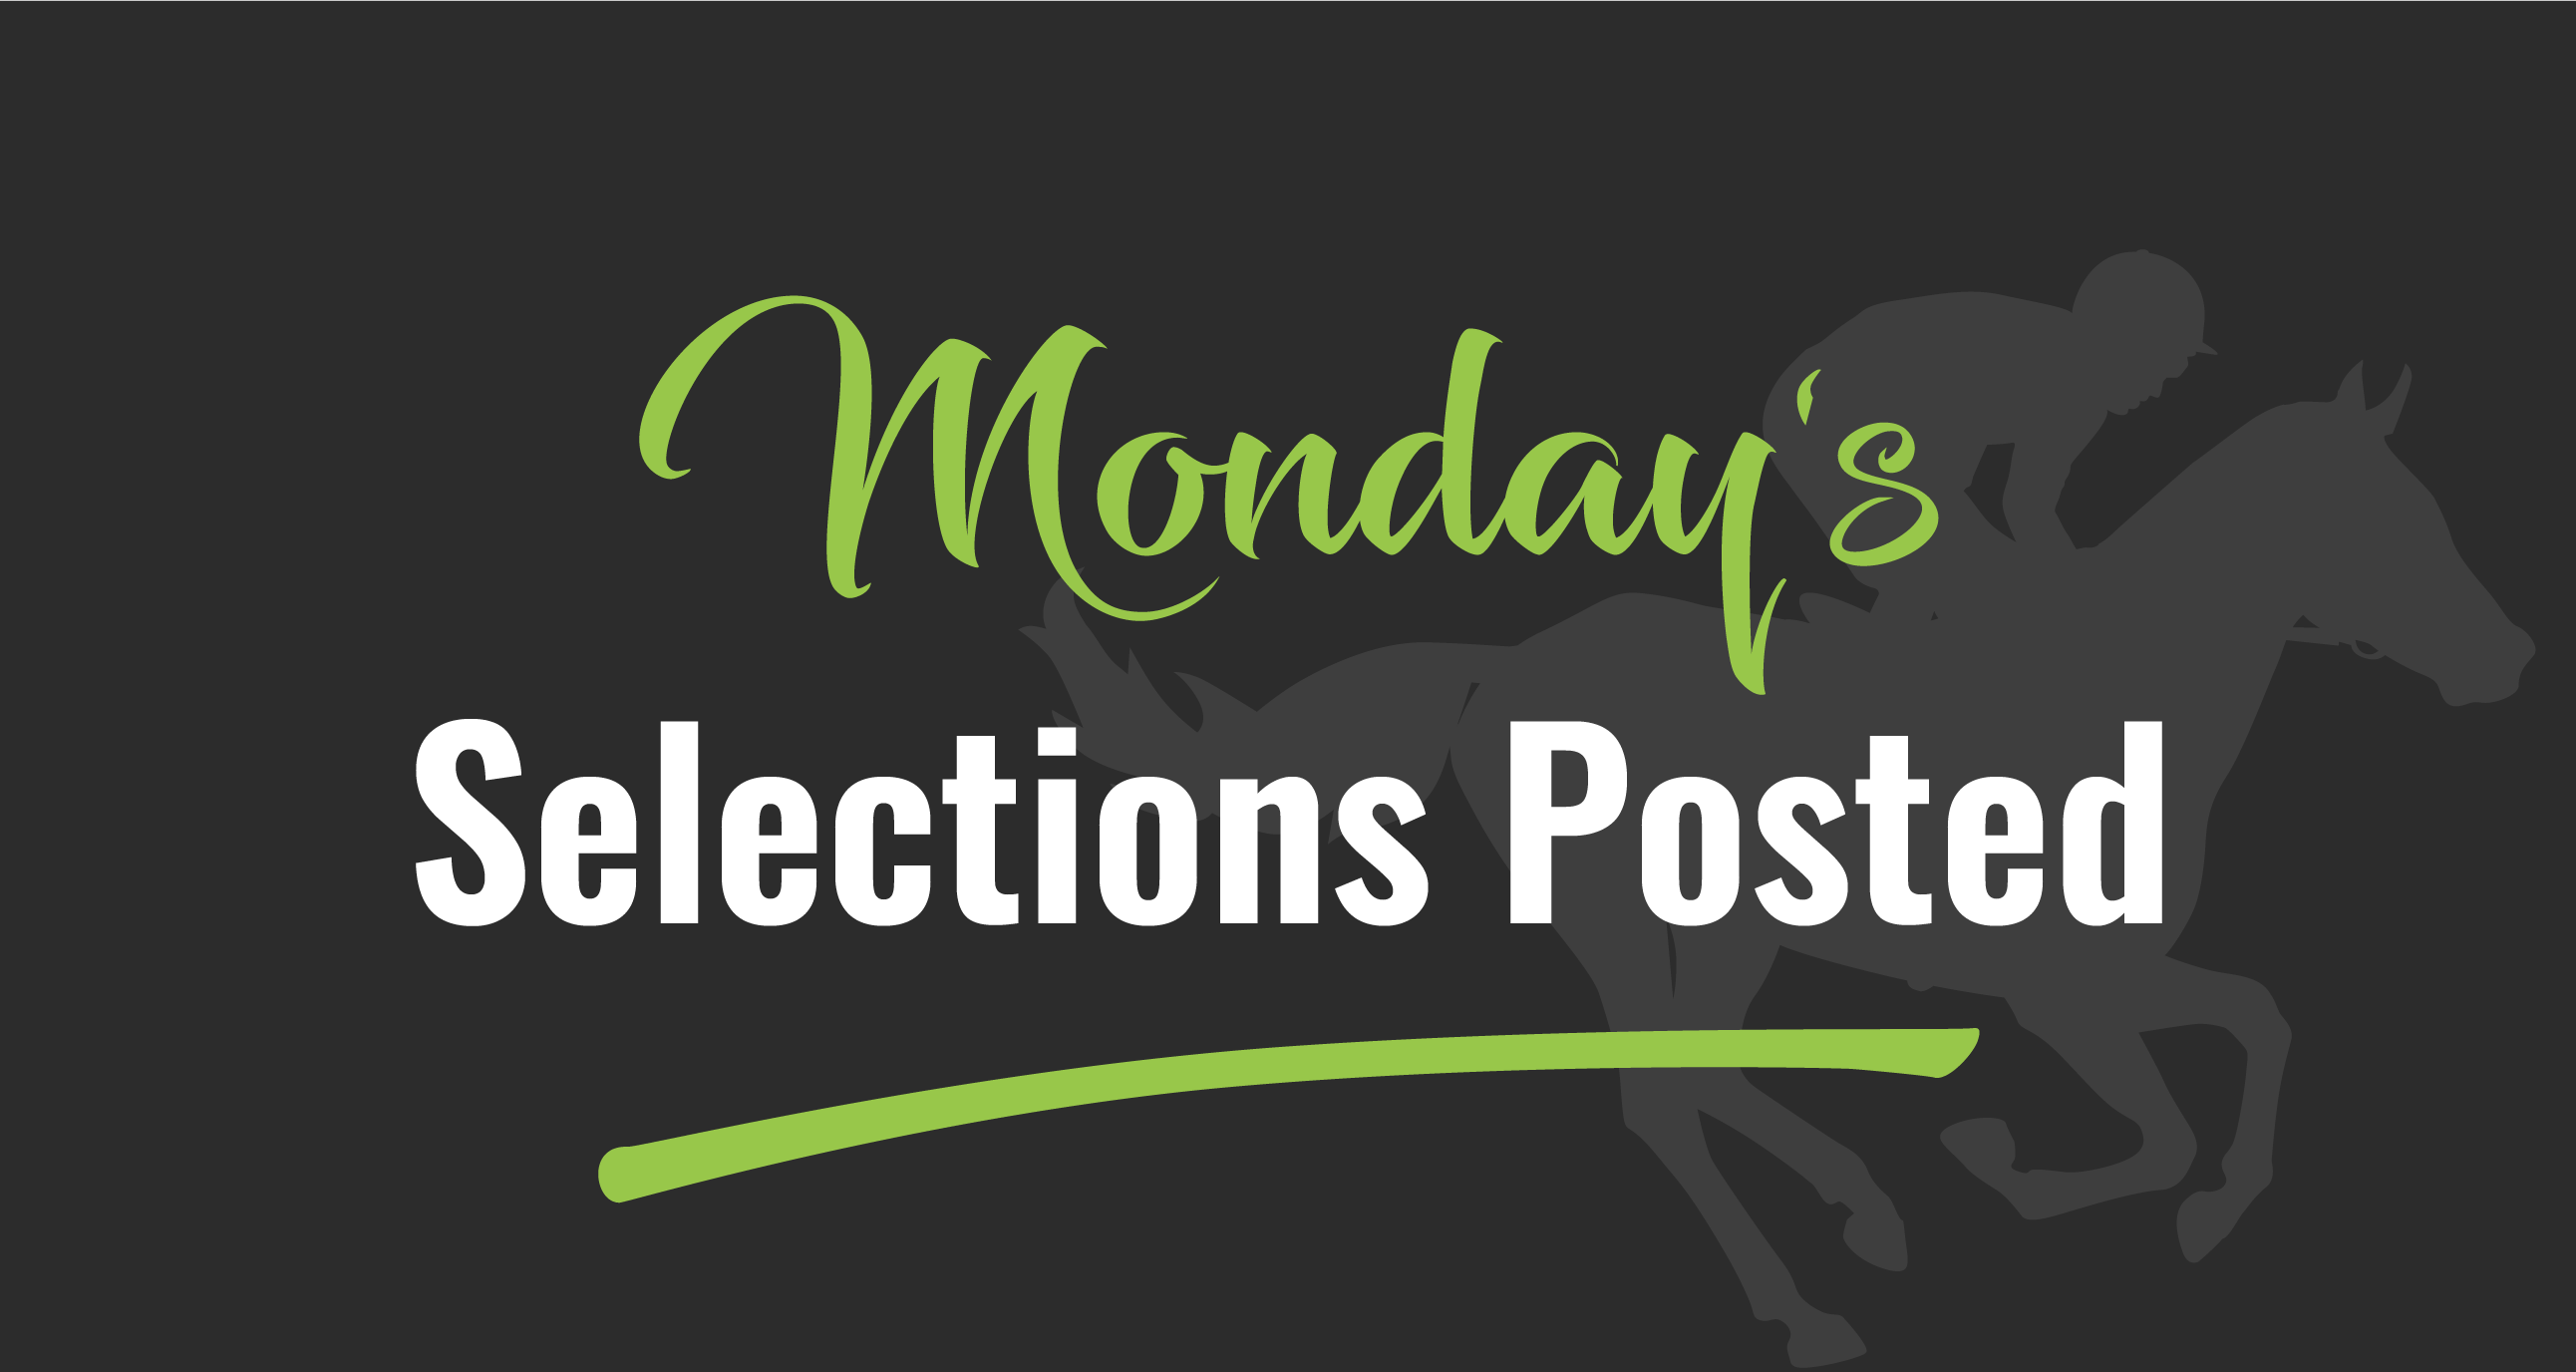 Selections for Monday 24 June 2019